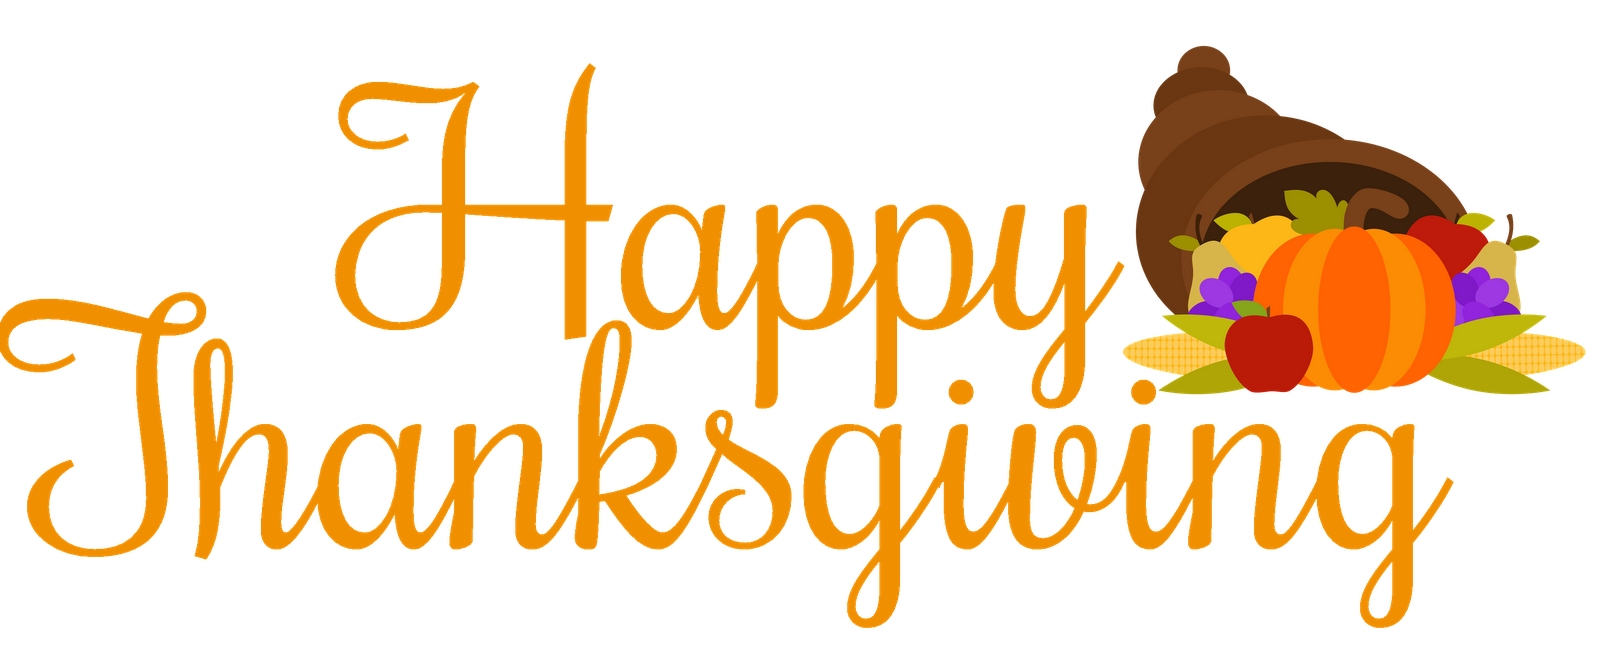 Happy thanksgiving png. From the twinery university